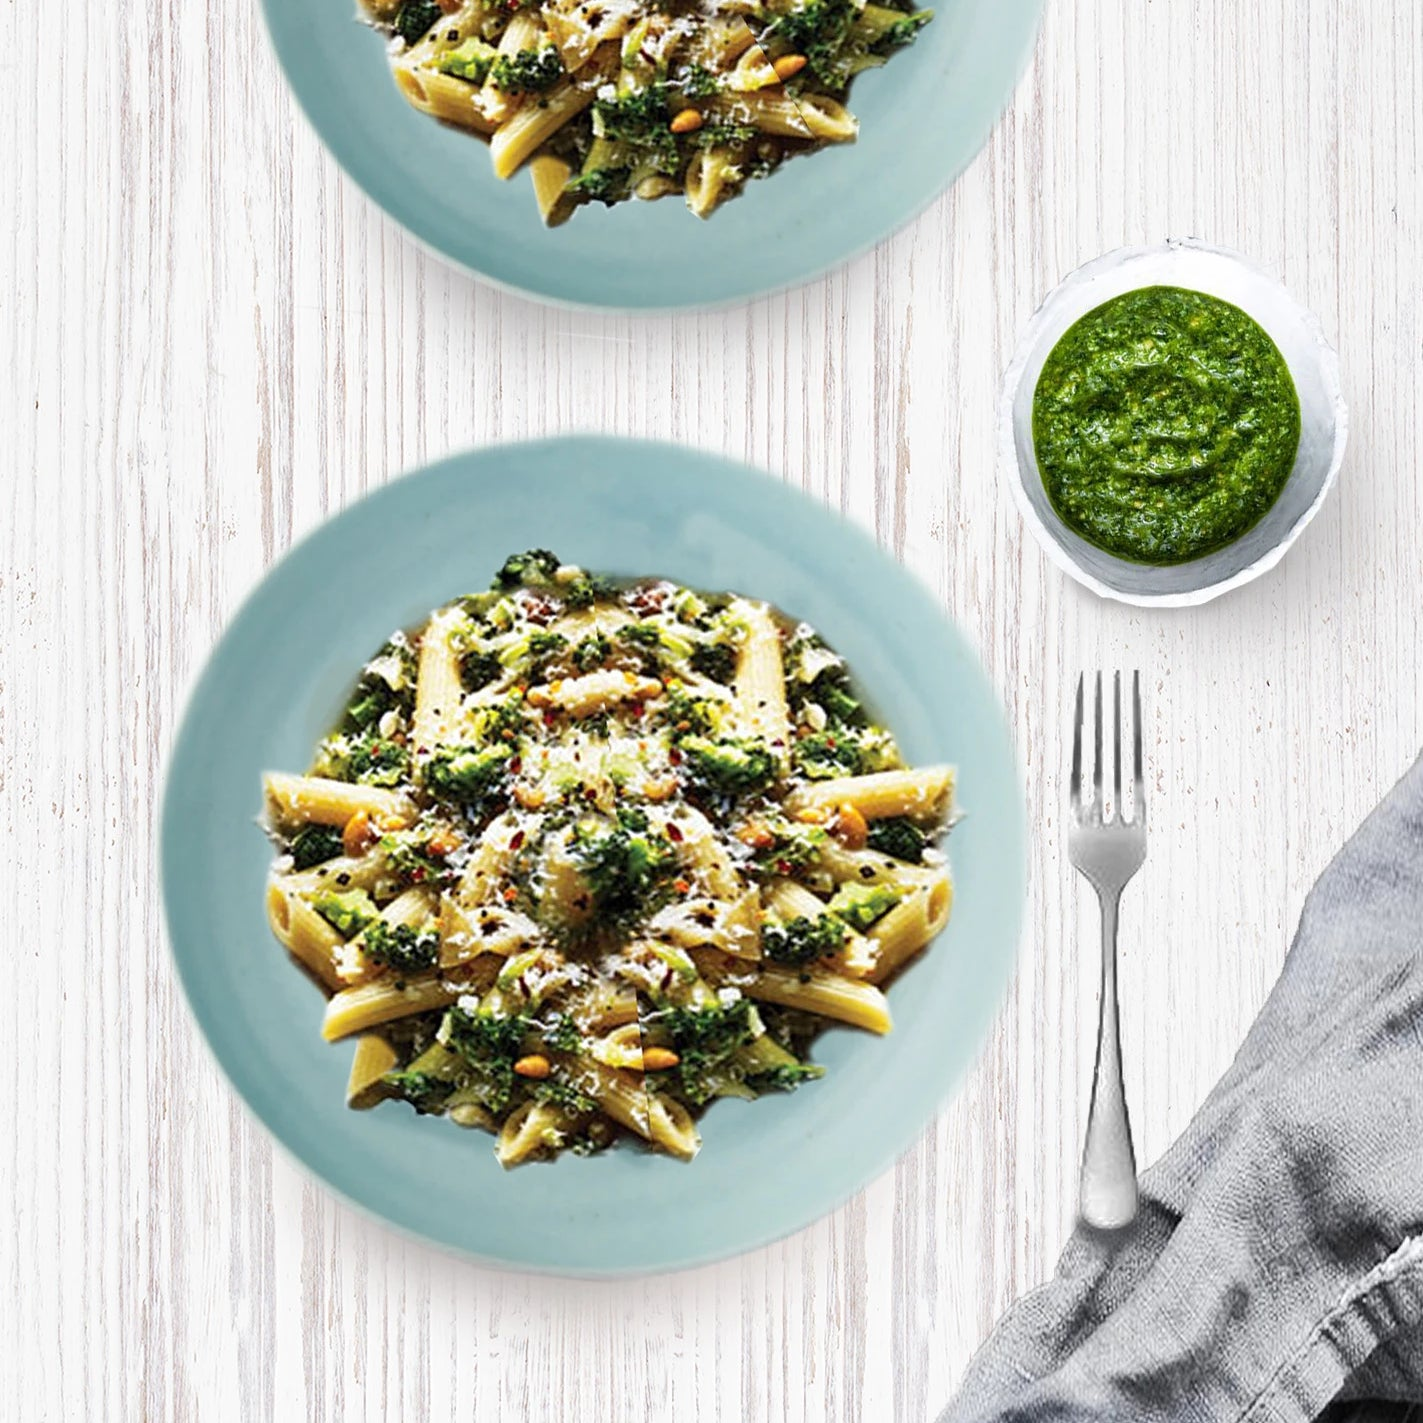 Broccoli Pesto Penne (Vegetarian)